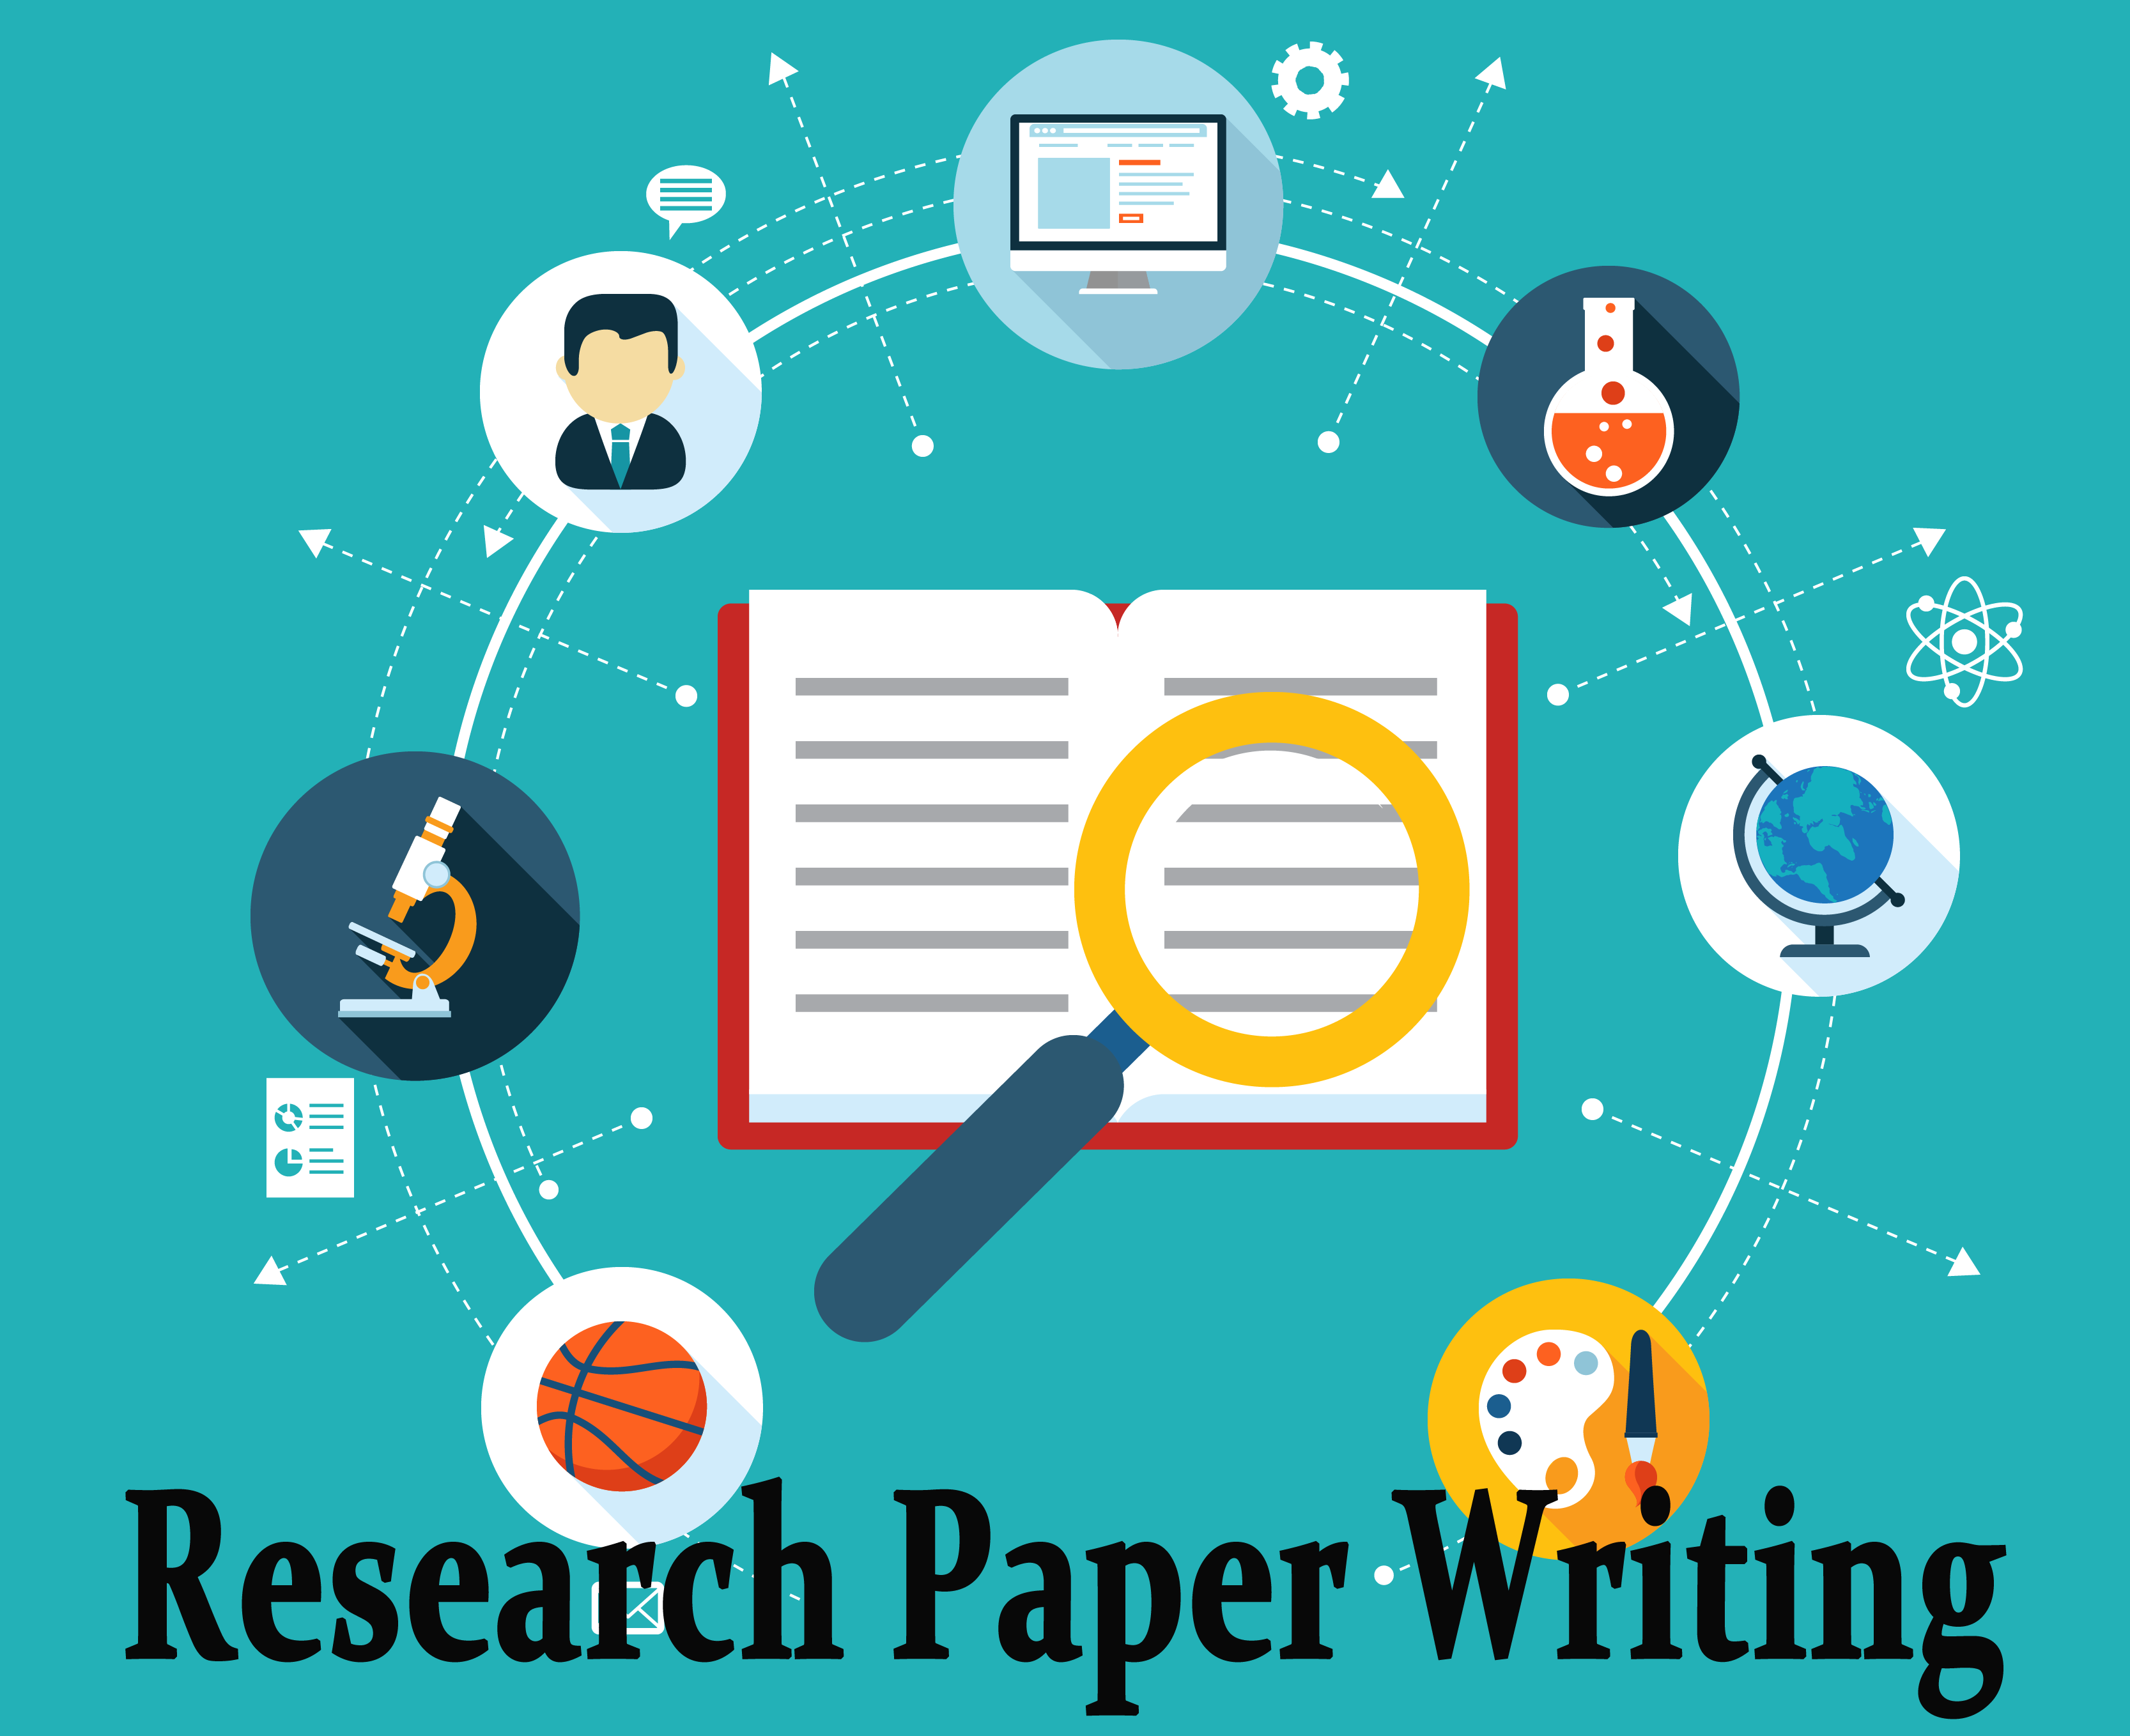 005 Research Paper Need Help Writing 503 Effective Rare My For Full